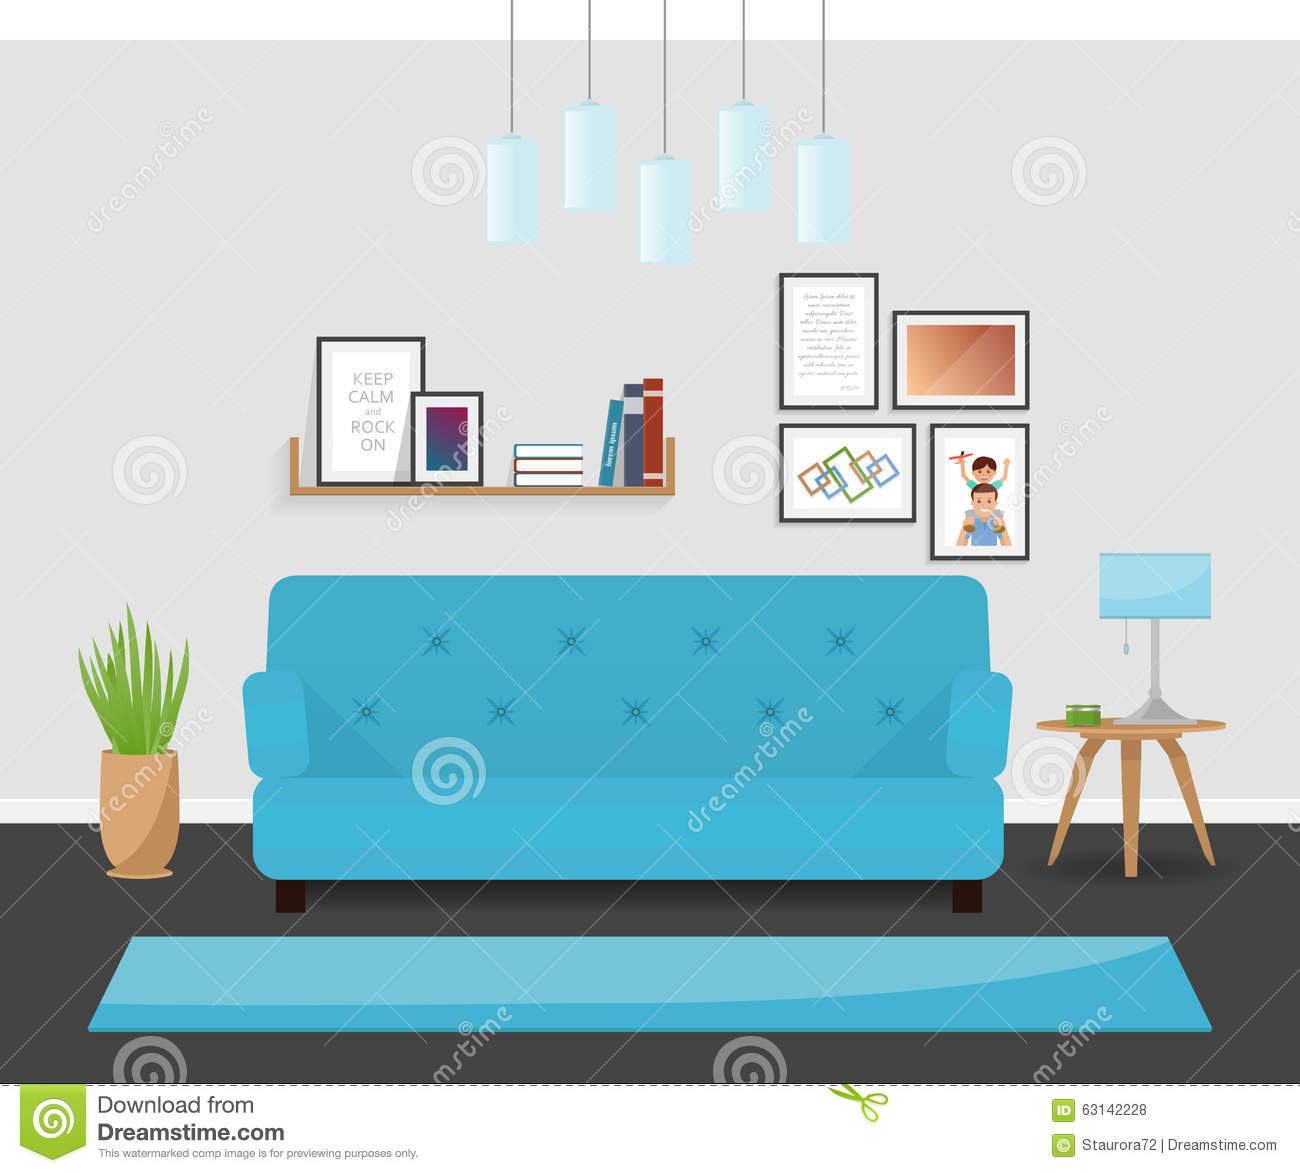 Cozy Living Room Vector Illustration: The Modern Interior Design In Turquoise Colors. The Cozy